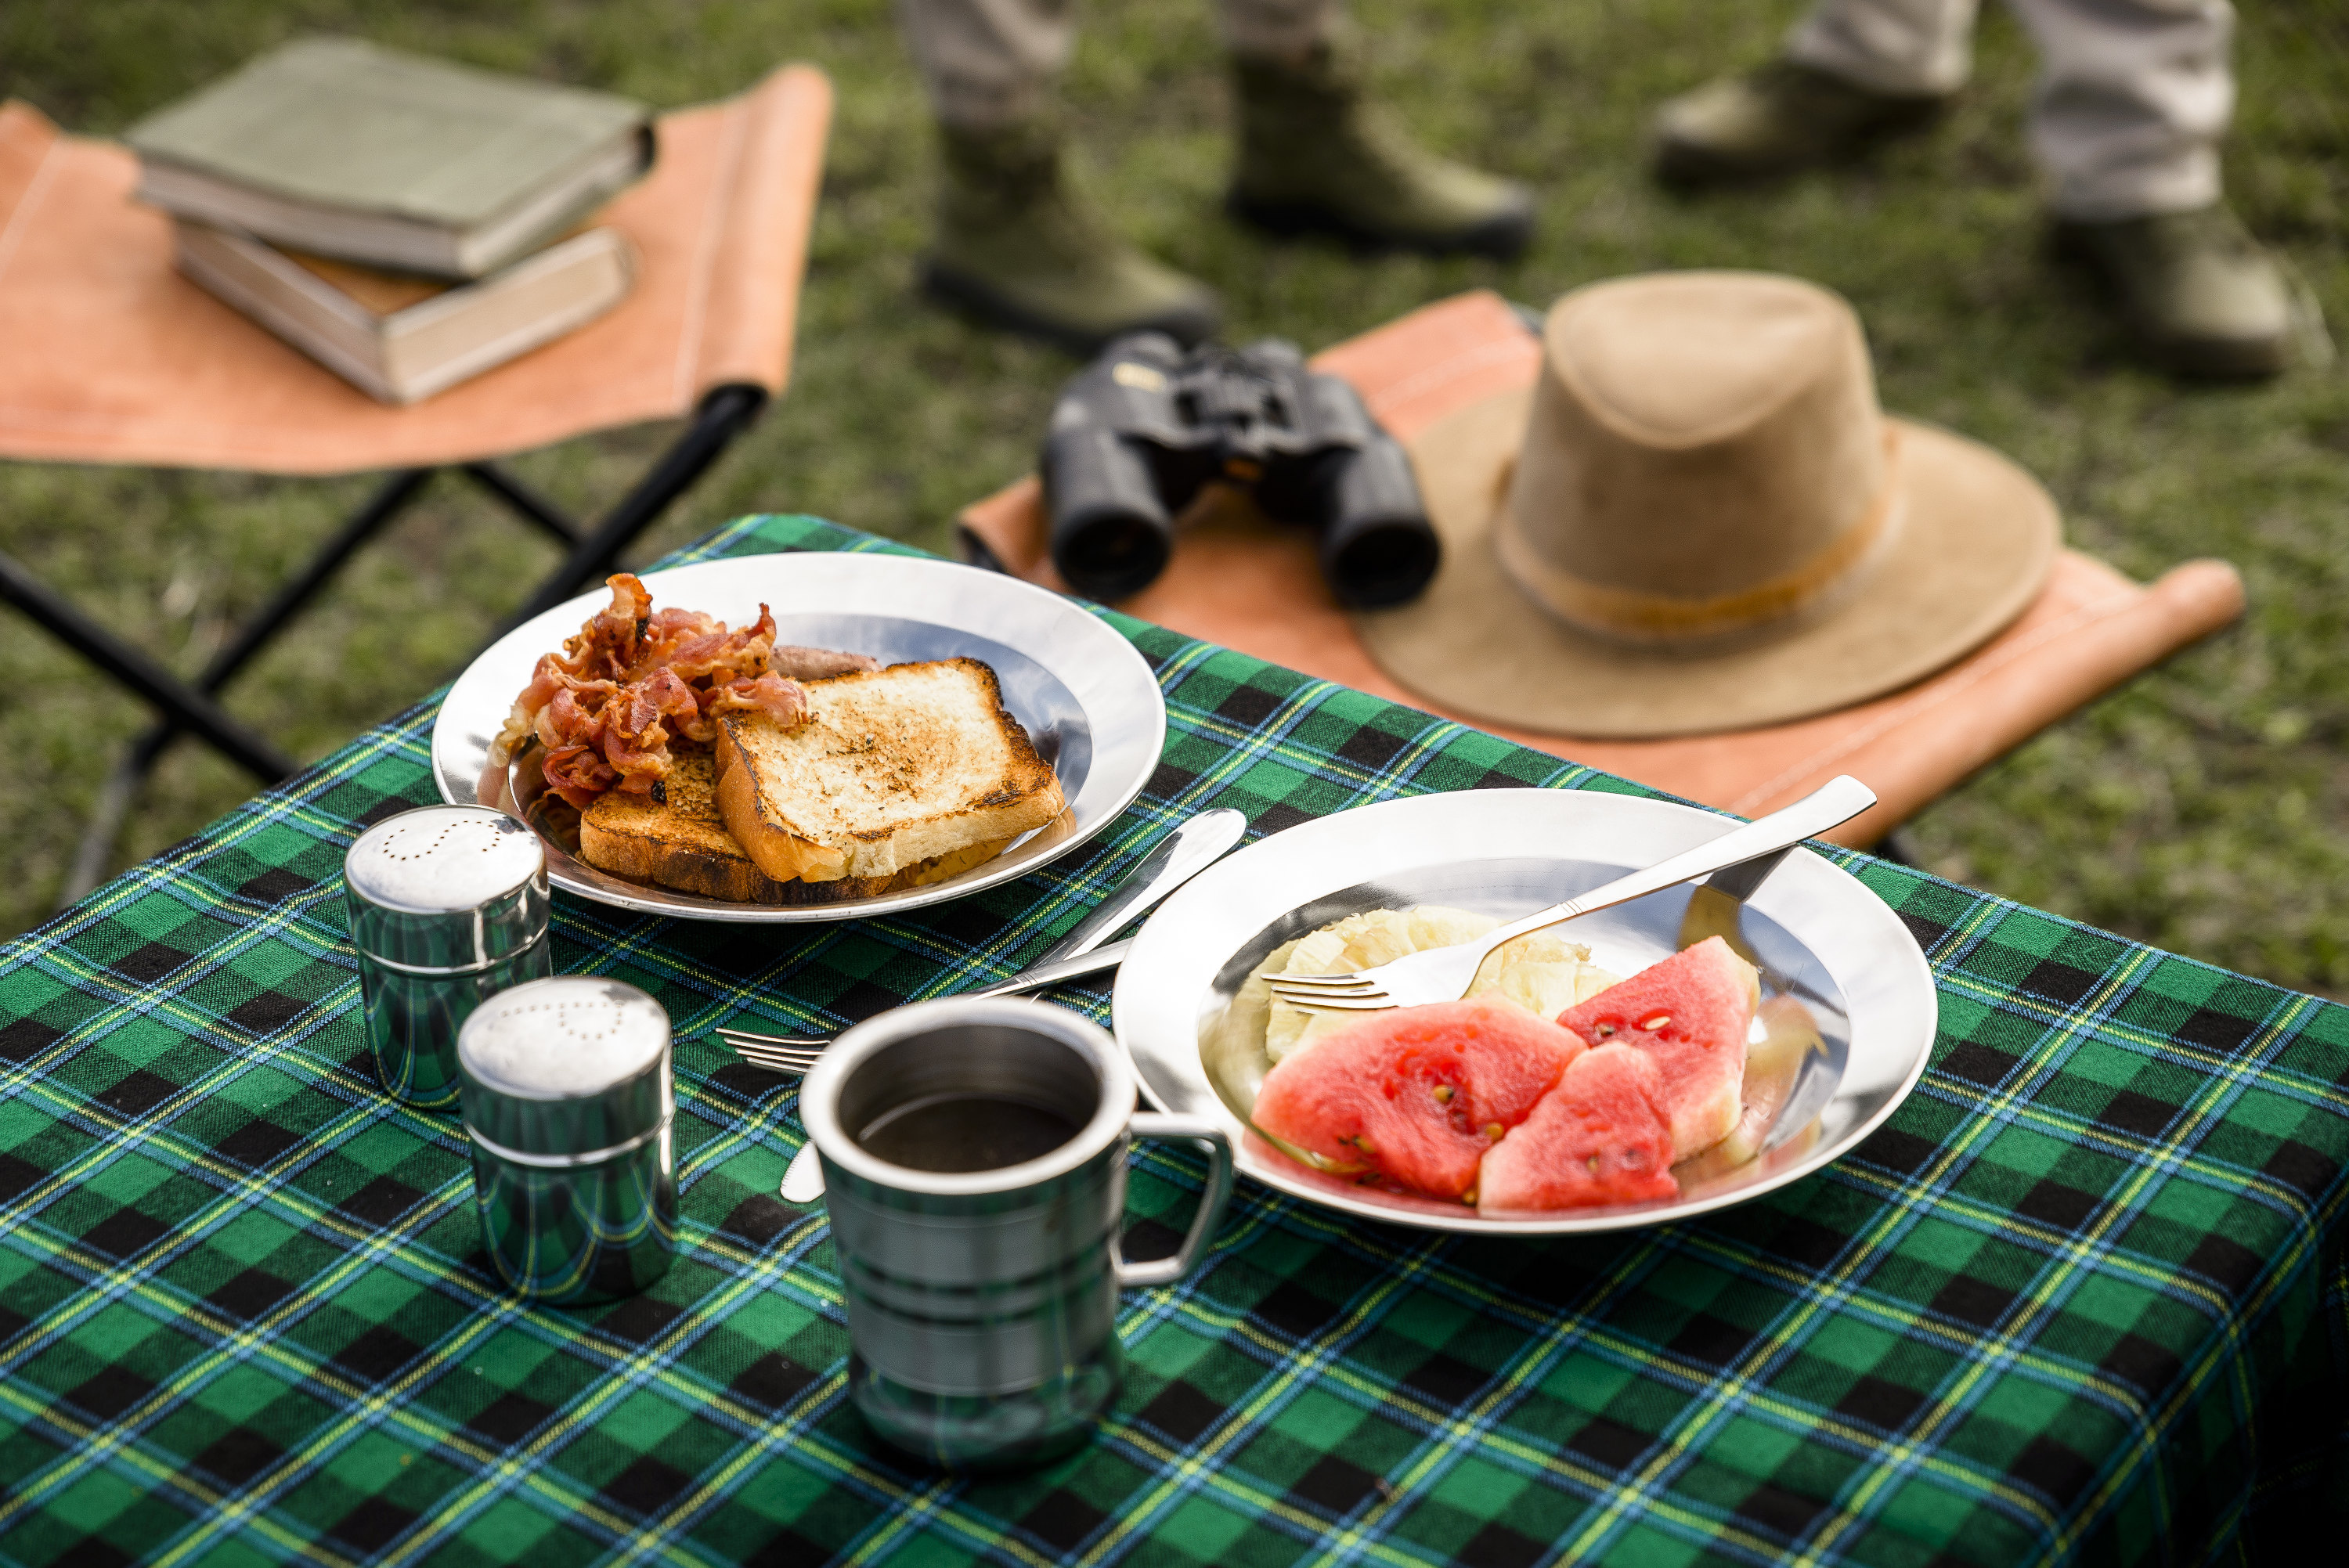 Guests can enjoy breakfast on the Serengeti during the experience.